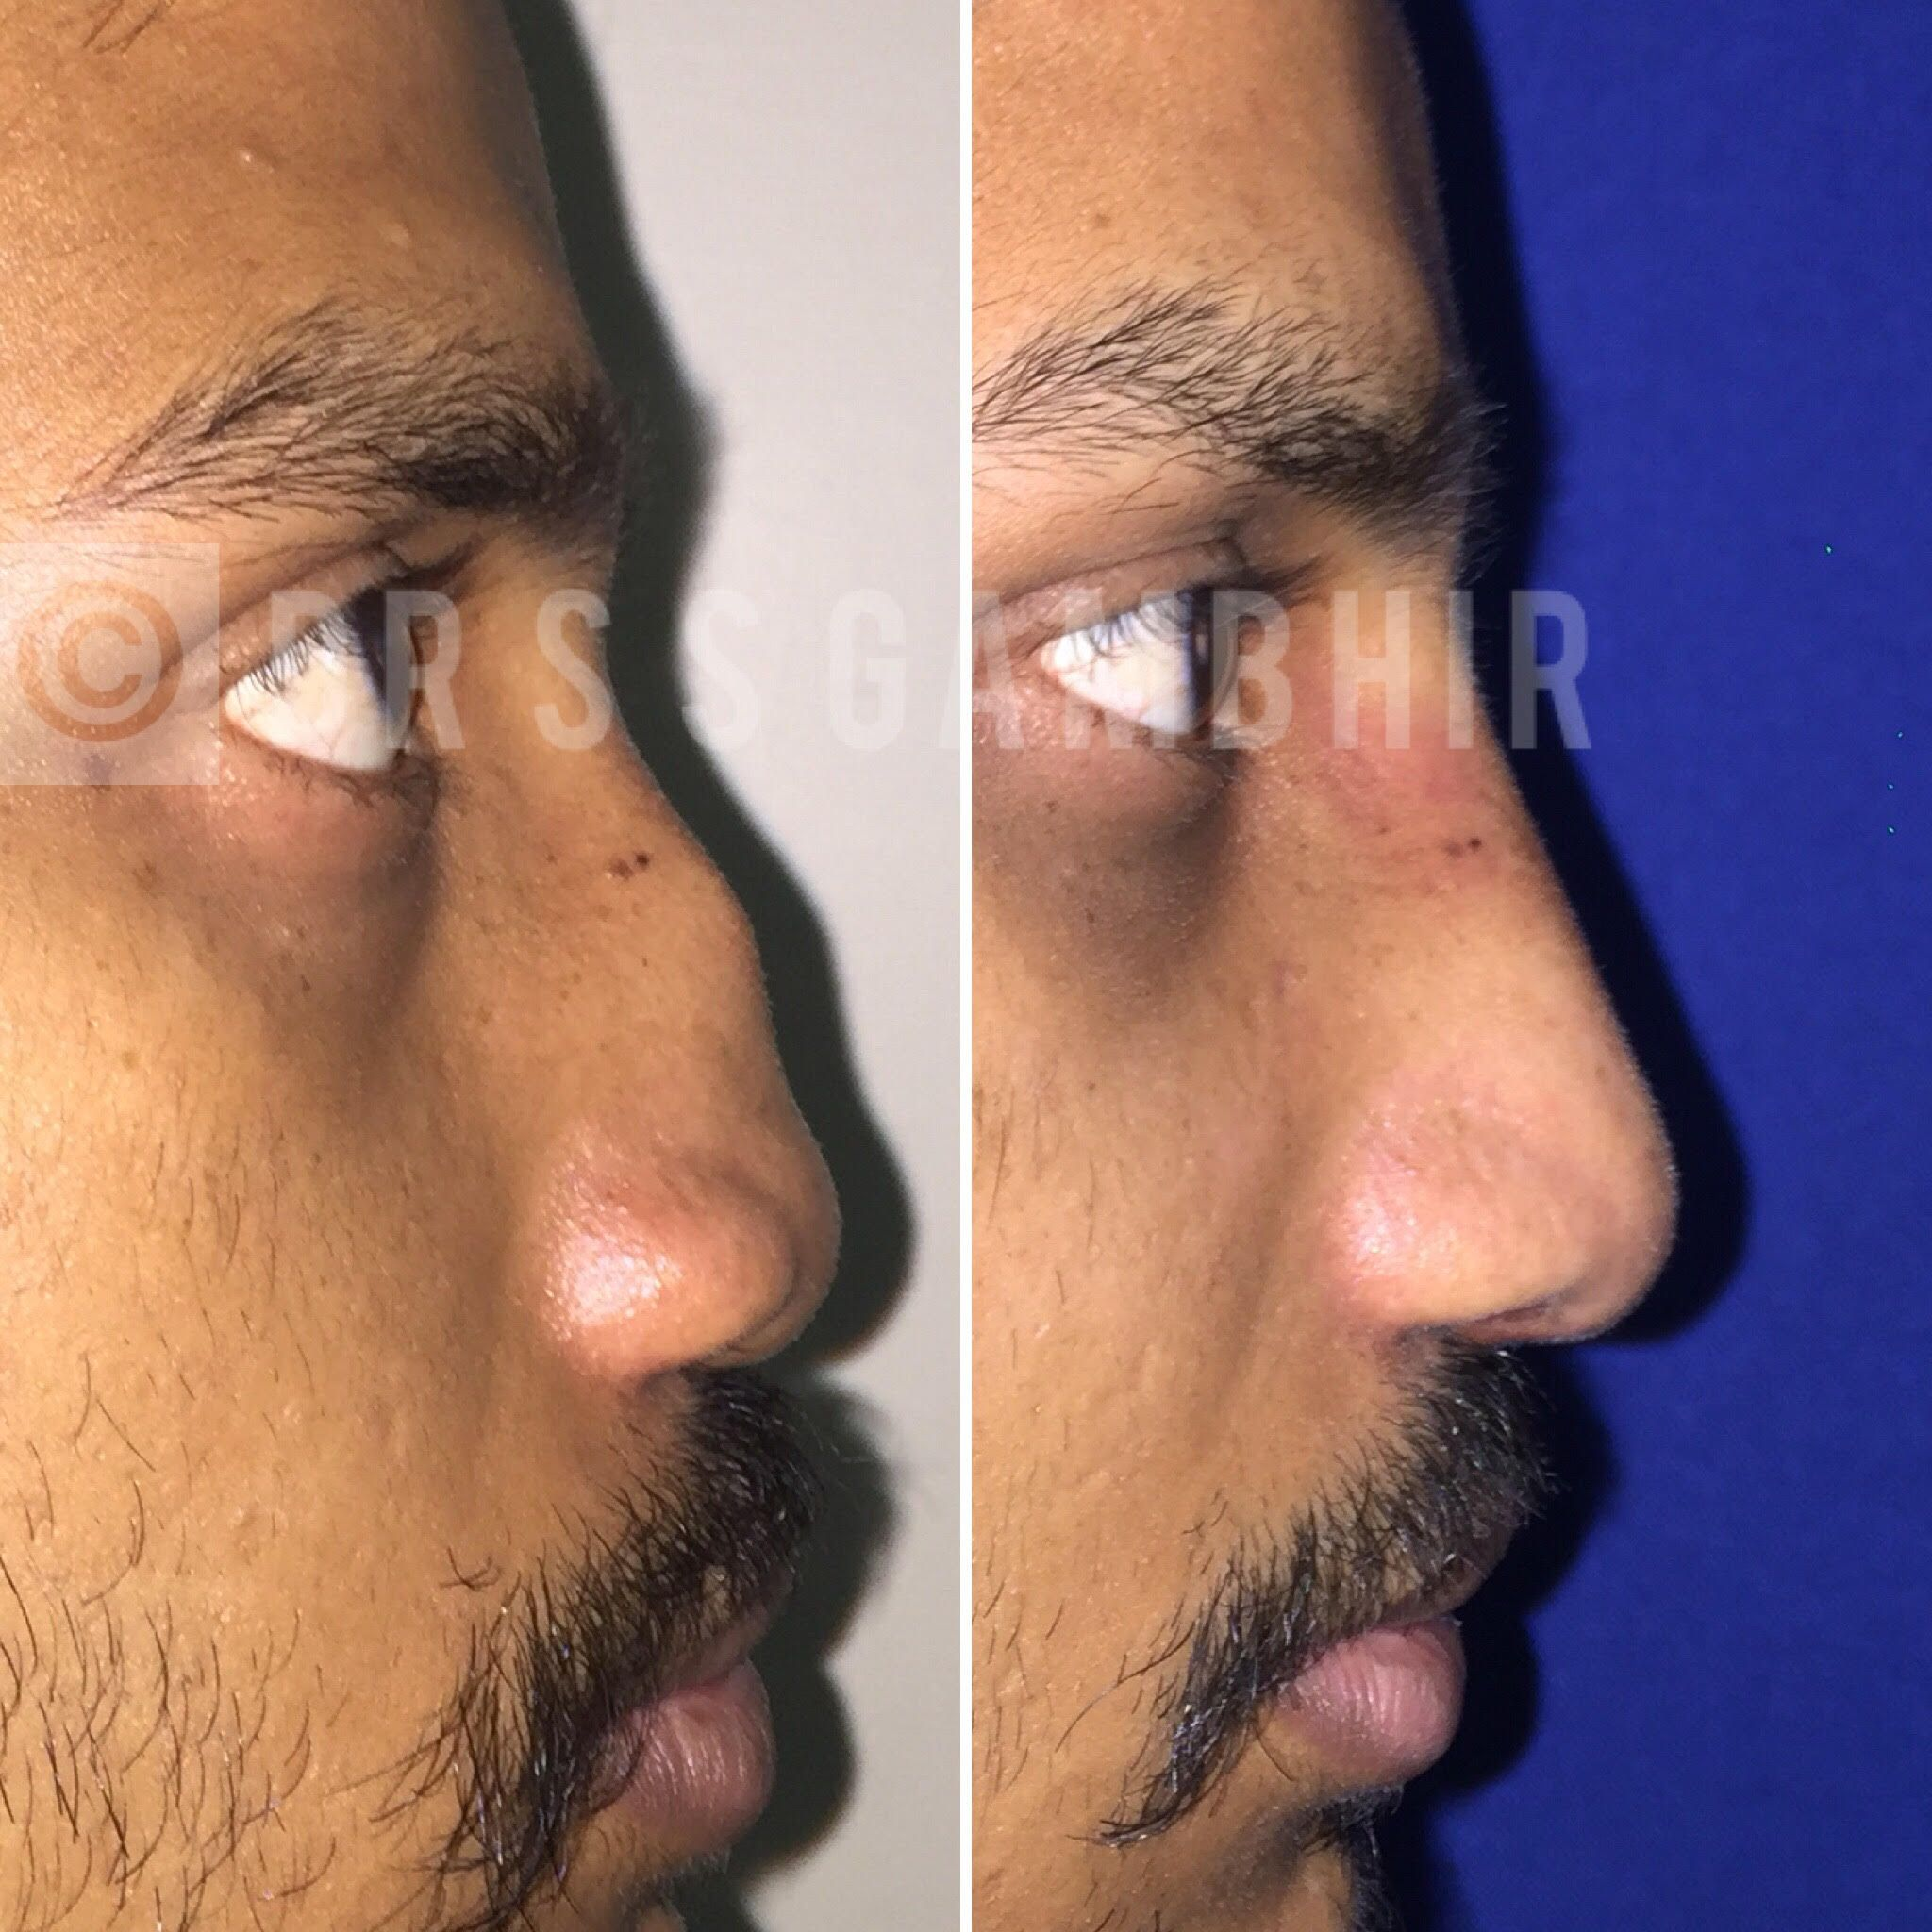 Get A Nose Job Done By Experts Rhinoplasty Is A Process To Transform The Nose Through Reshaping Bine And Cart Rhinoplasty Rhinoplasty Surgery Rhinoplasty Cost